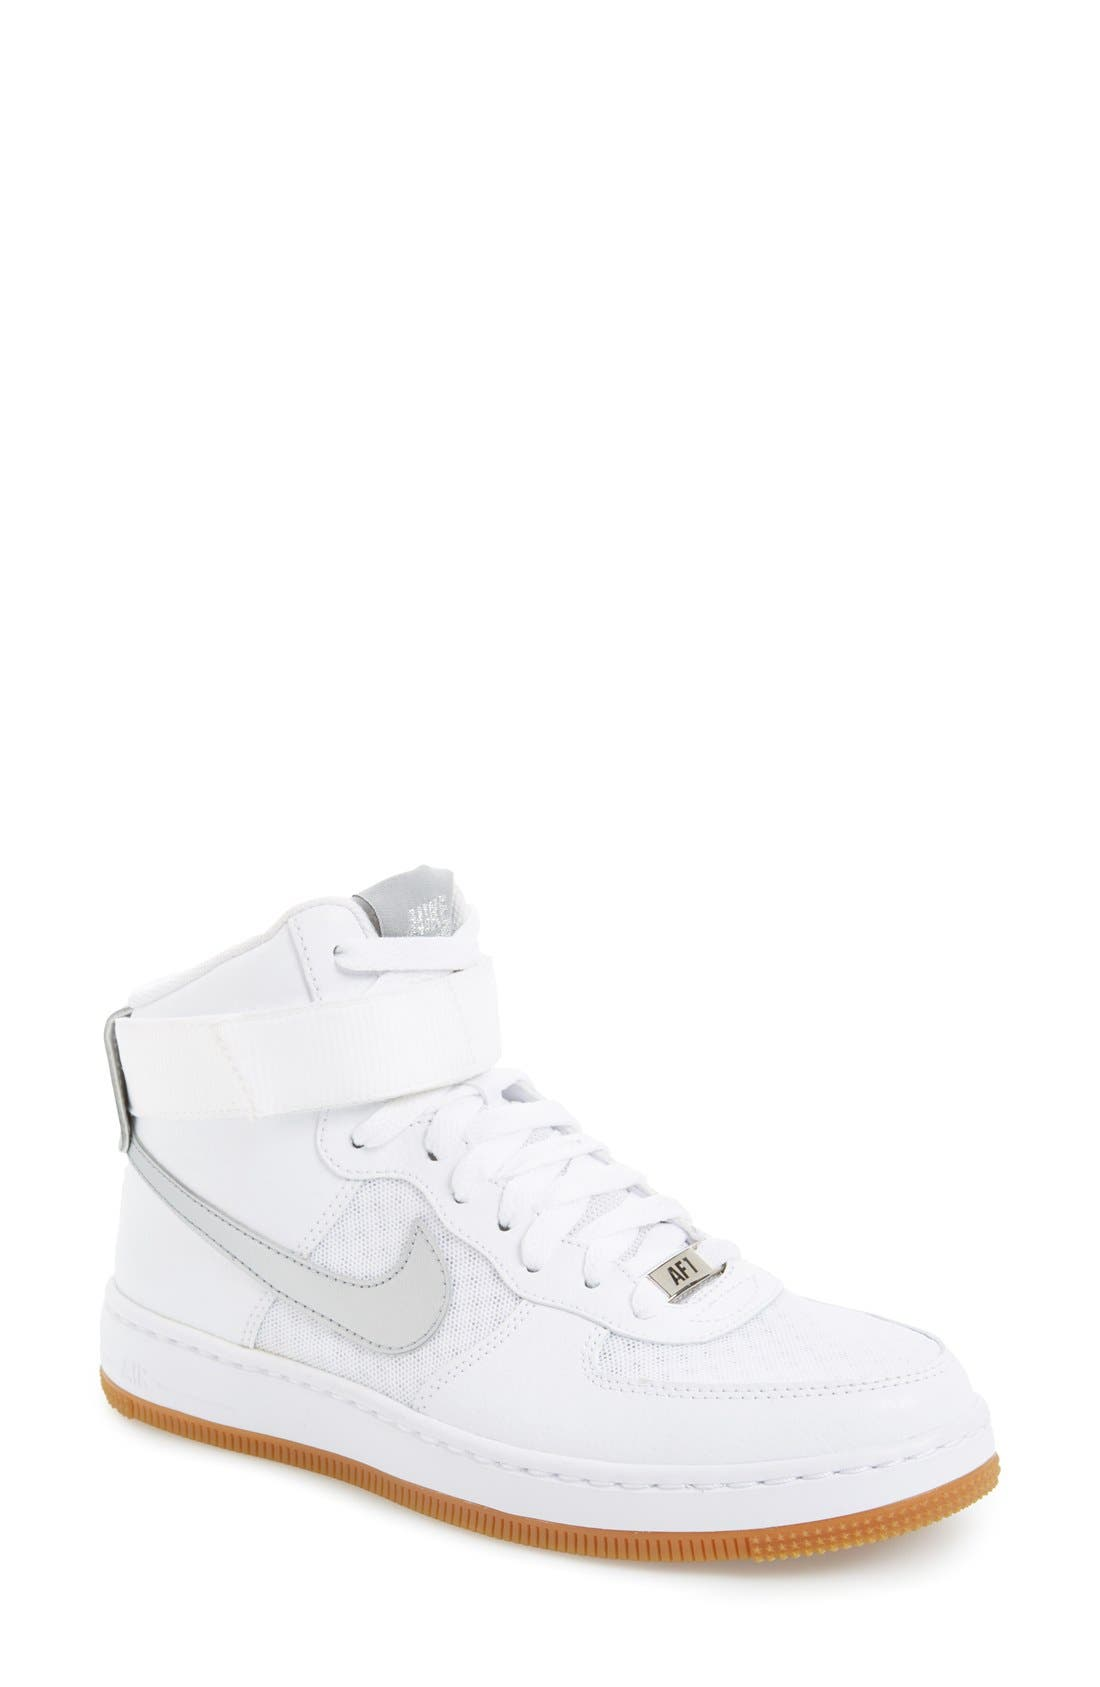 Main Image - Nike 'AF-1 Ultra Force Mid' High Top Sneaker (Women)